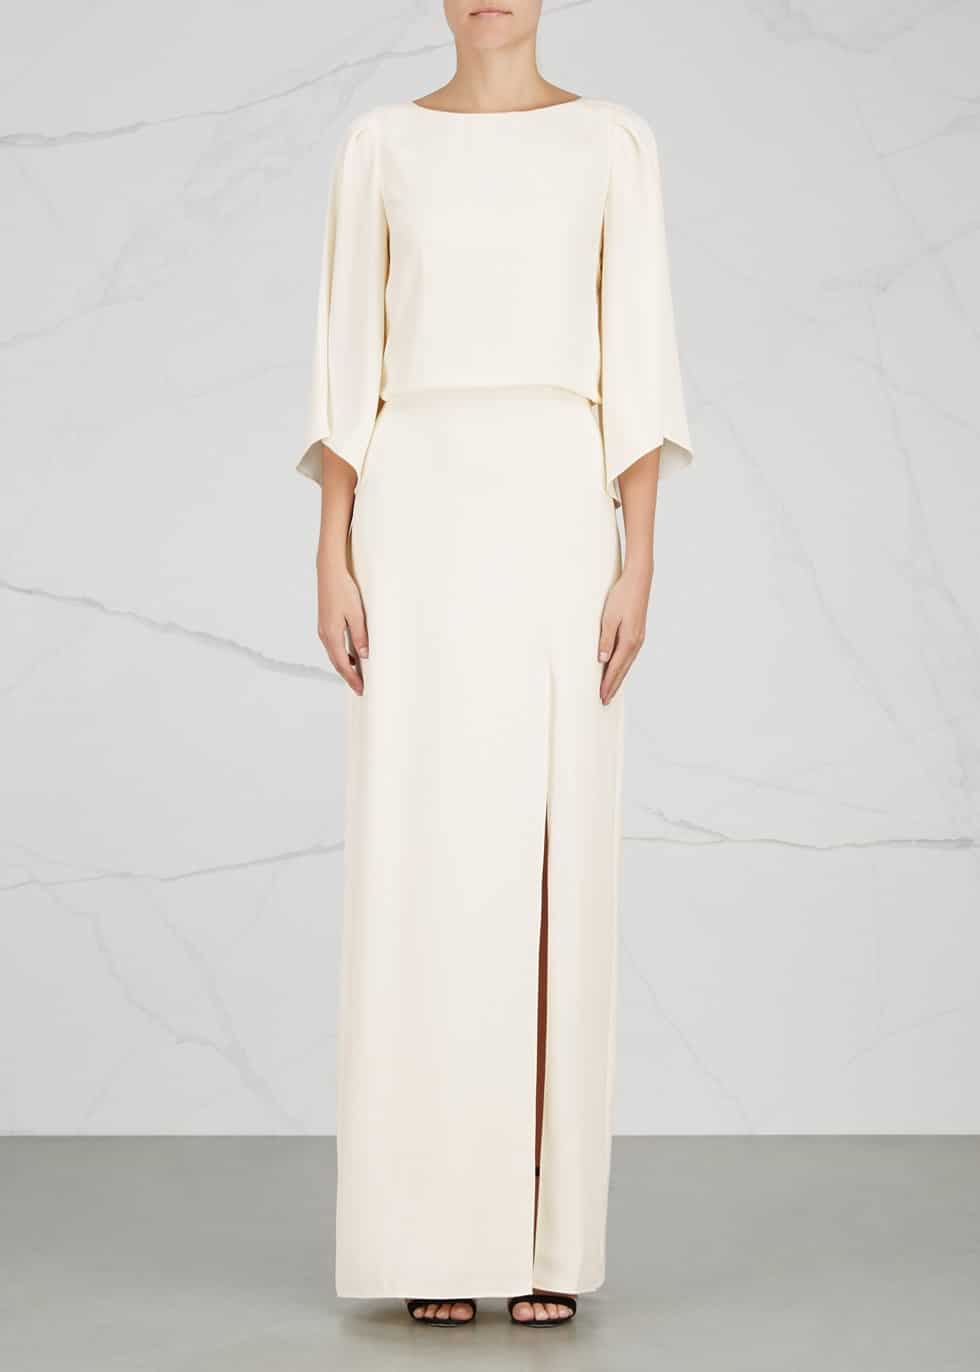 Halston Heritage Embroidered Ivory Gown